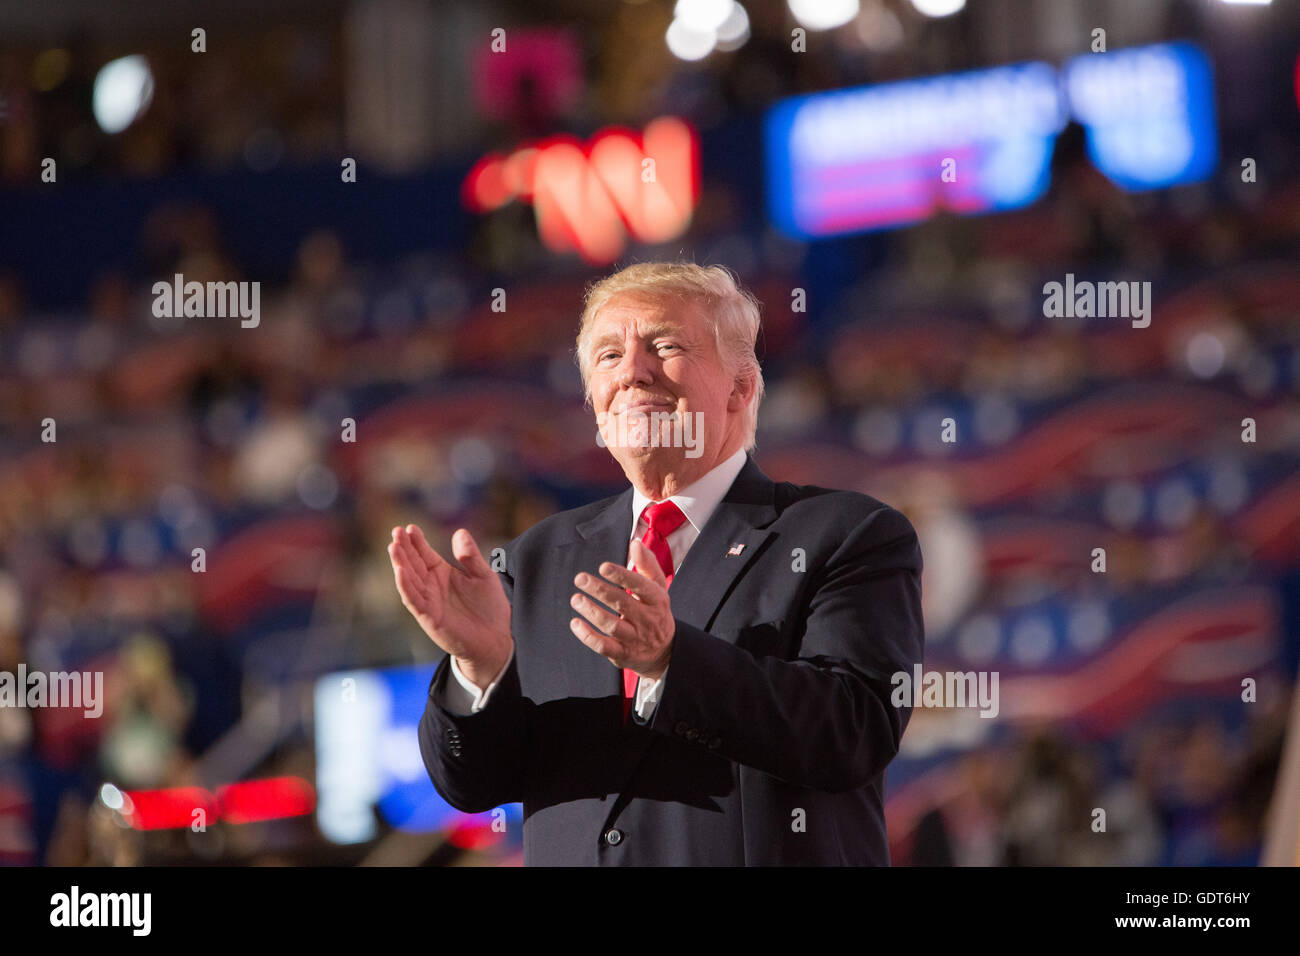 Cleveland, Ohio, USA; July 21, 2016: Donald J. Trump accepts his nomination to run for president at the Republican - Stock Image